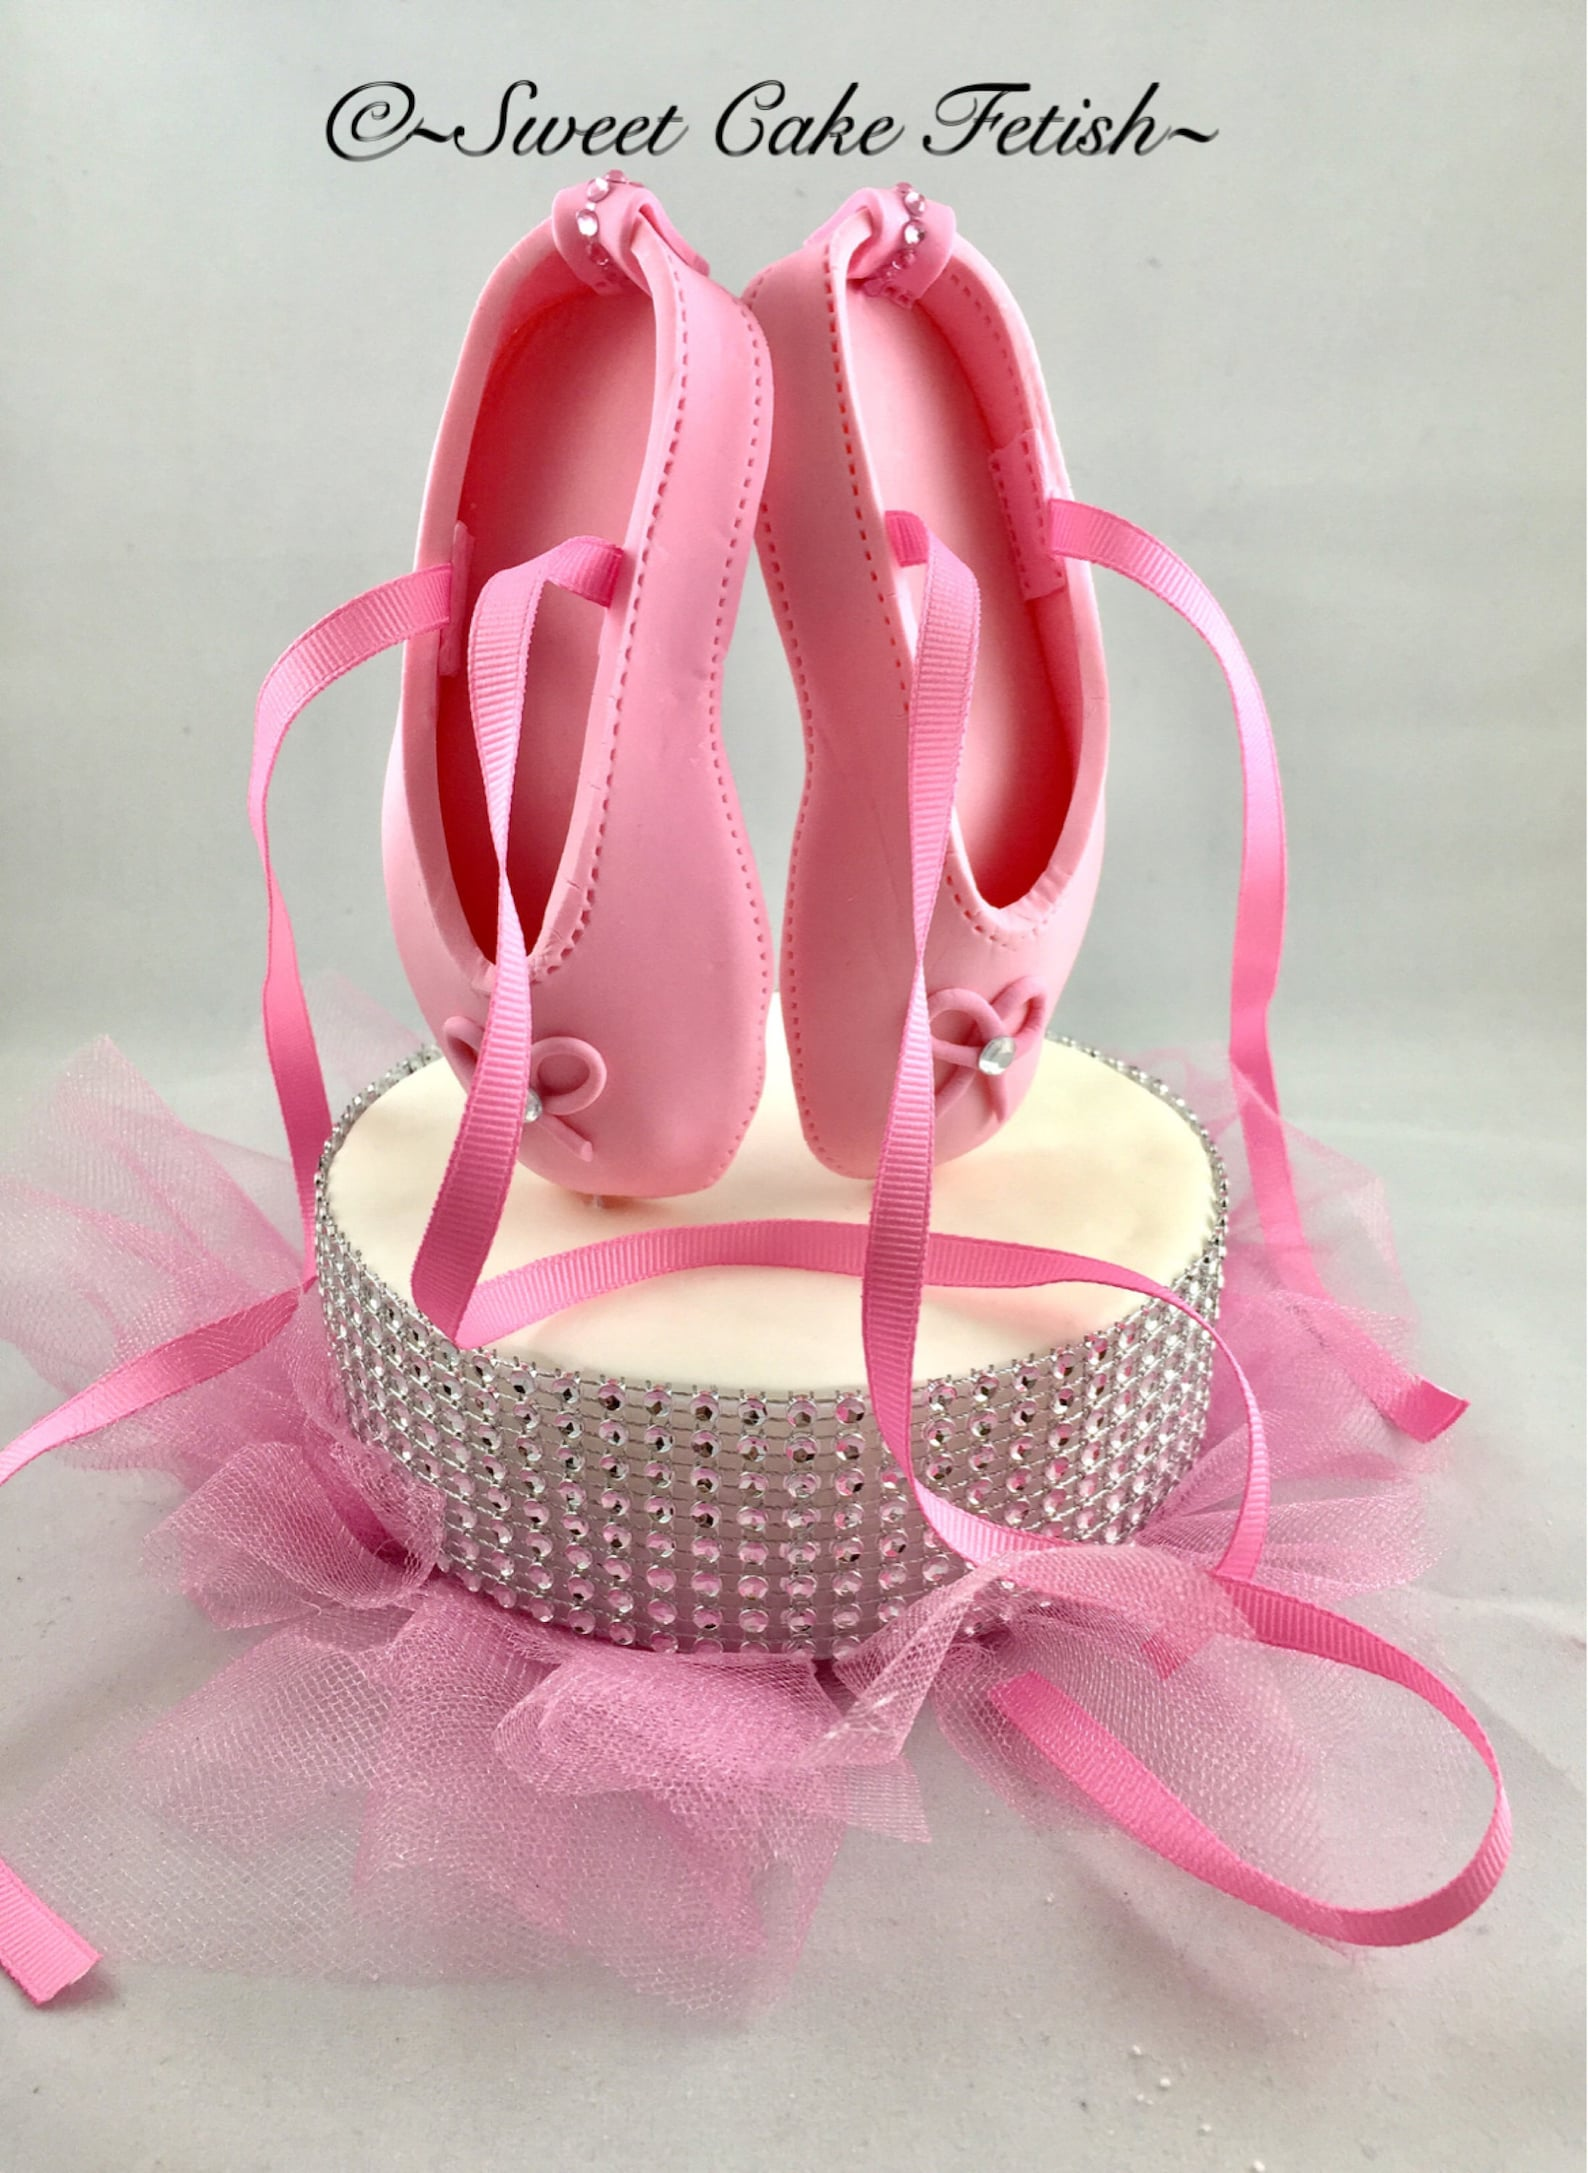 ballerina cake topper pink ballet shoes cake topper birthday cake topper ballerina cake decorations ballerina birthday decor bal